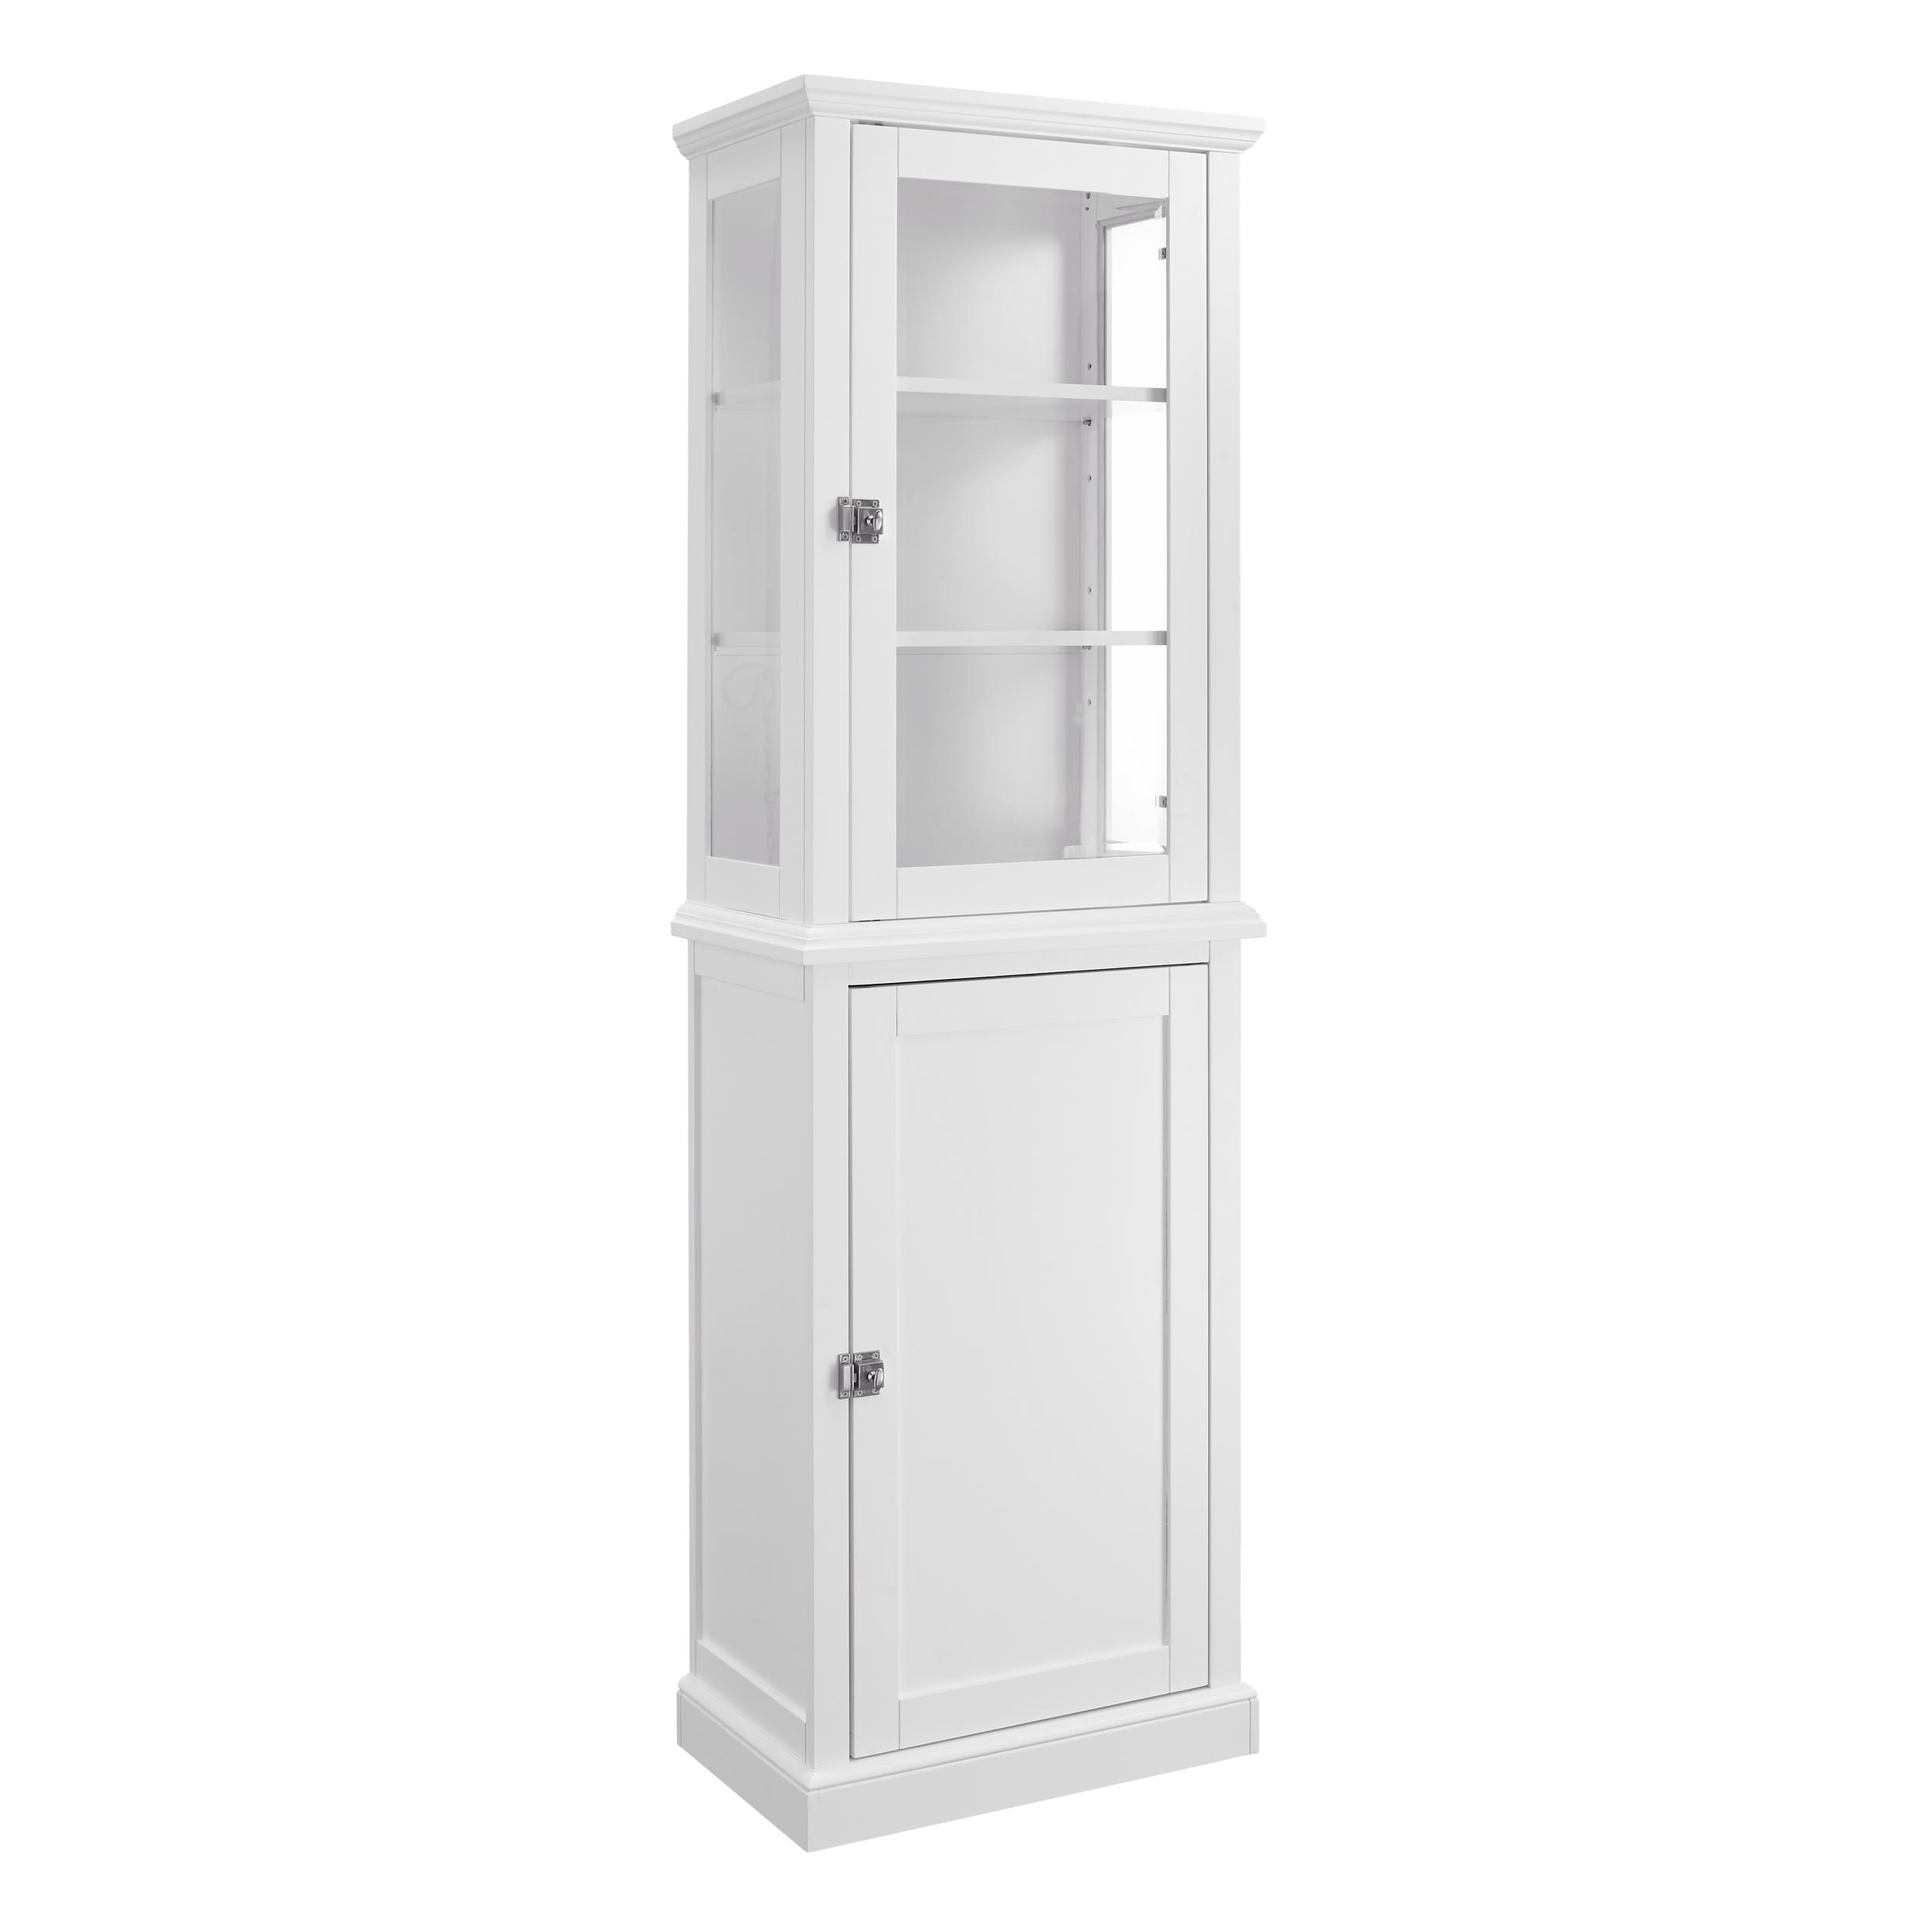 Merveilleux Scarsdale White Tall Cabinet